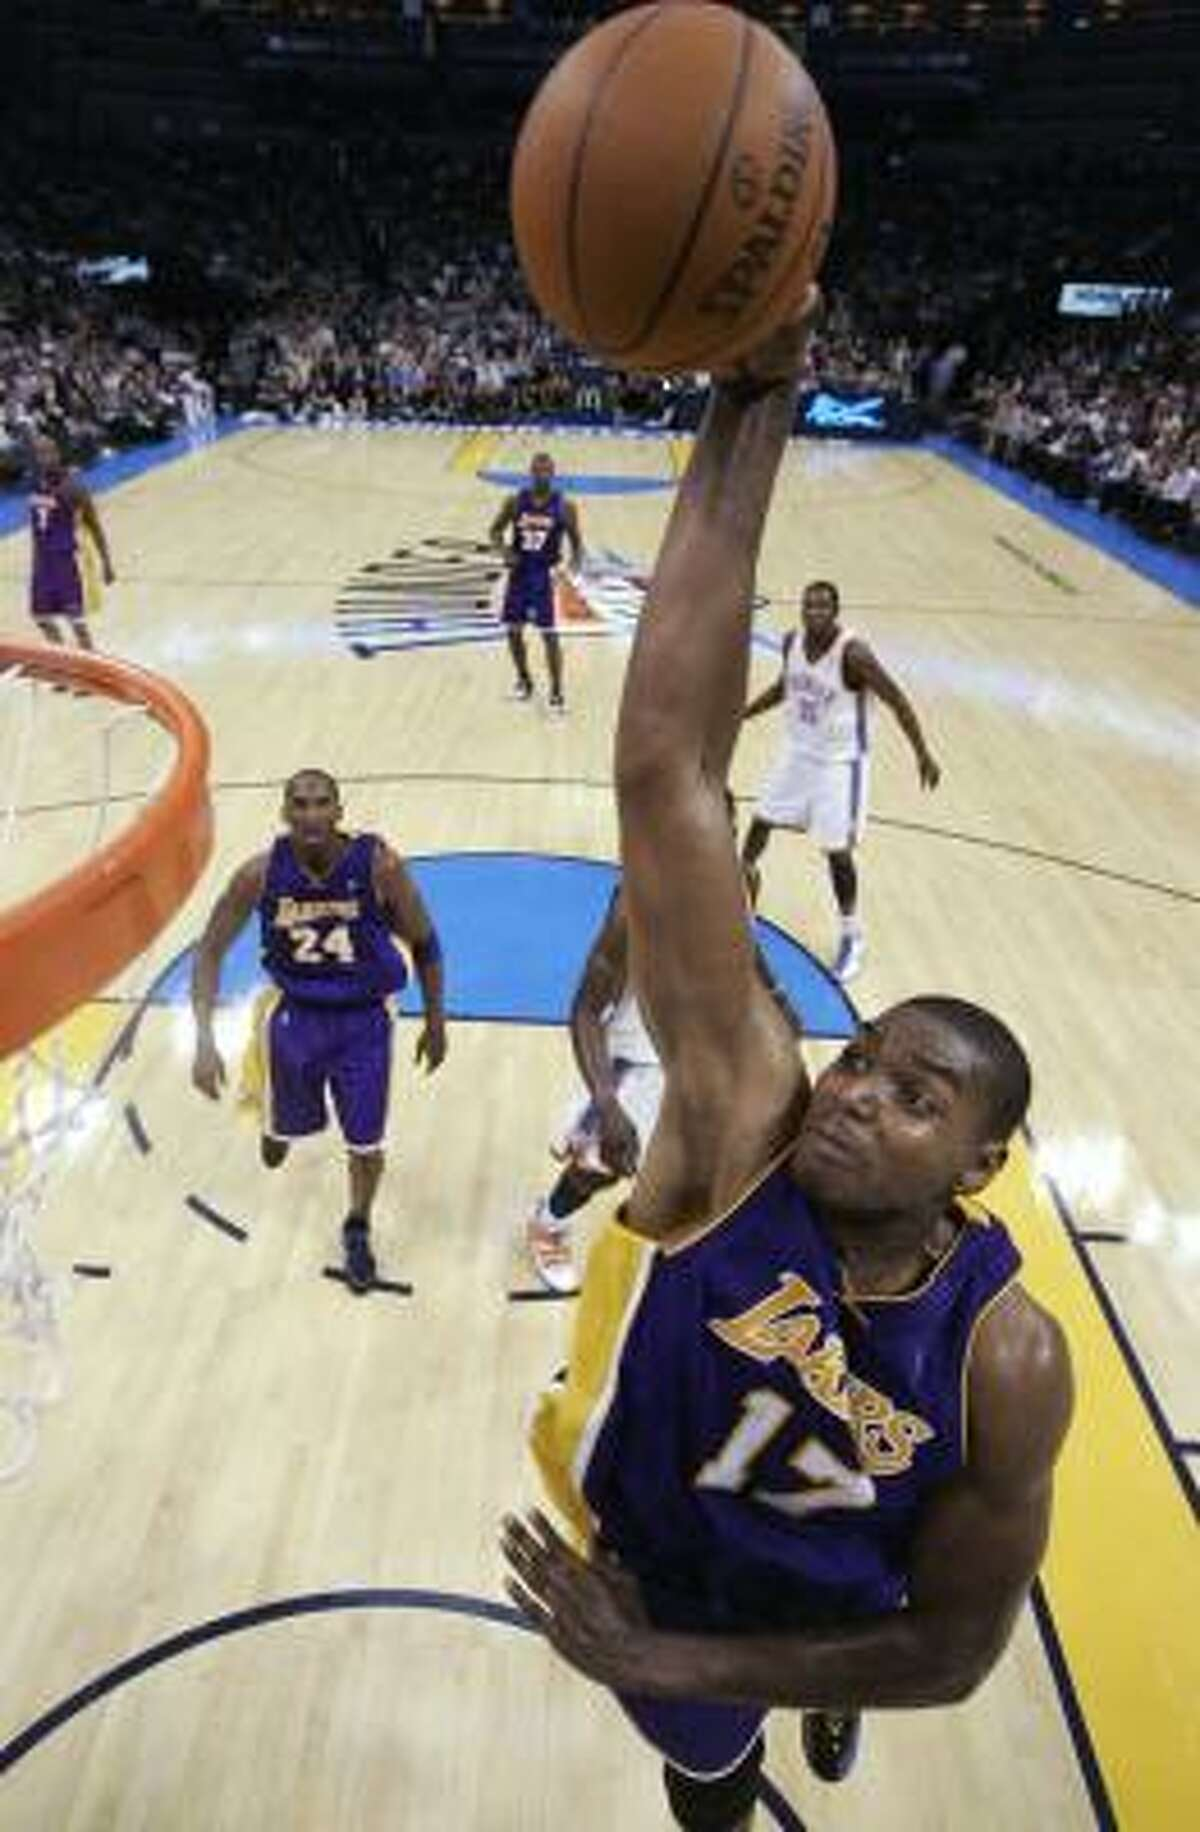 Lakers center Andrew Bynum goes hard to the basket against the Oklahoma City Thunder.